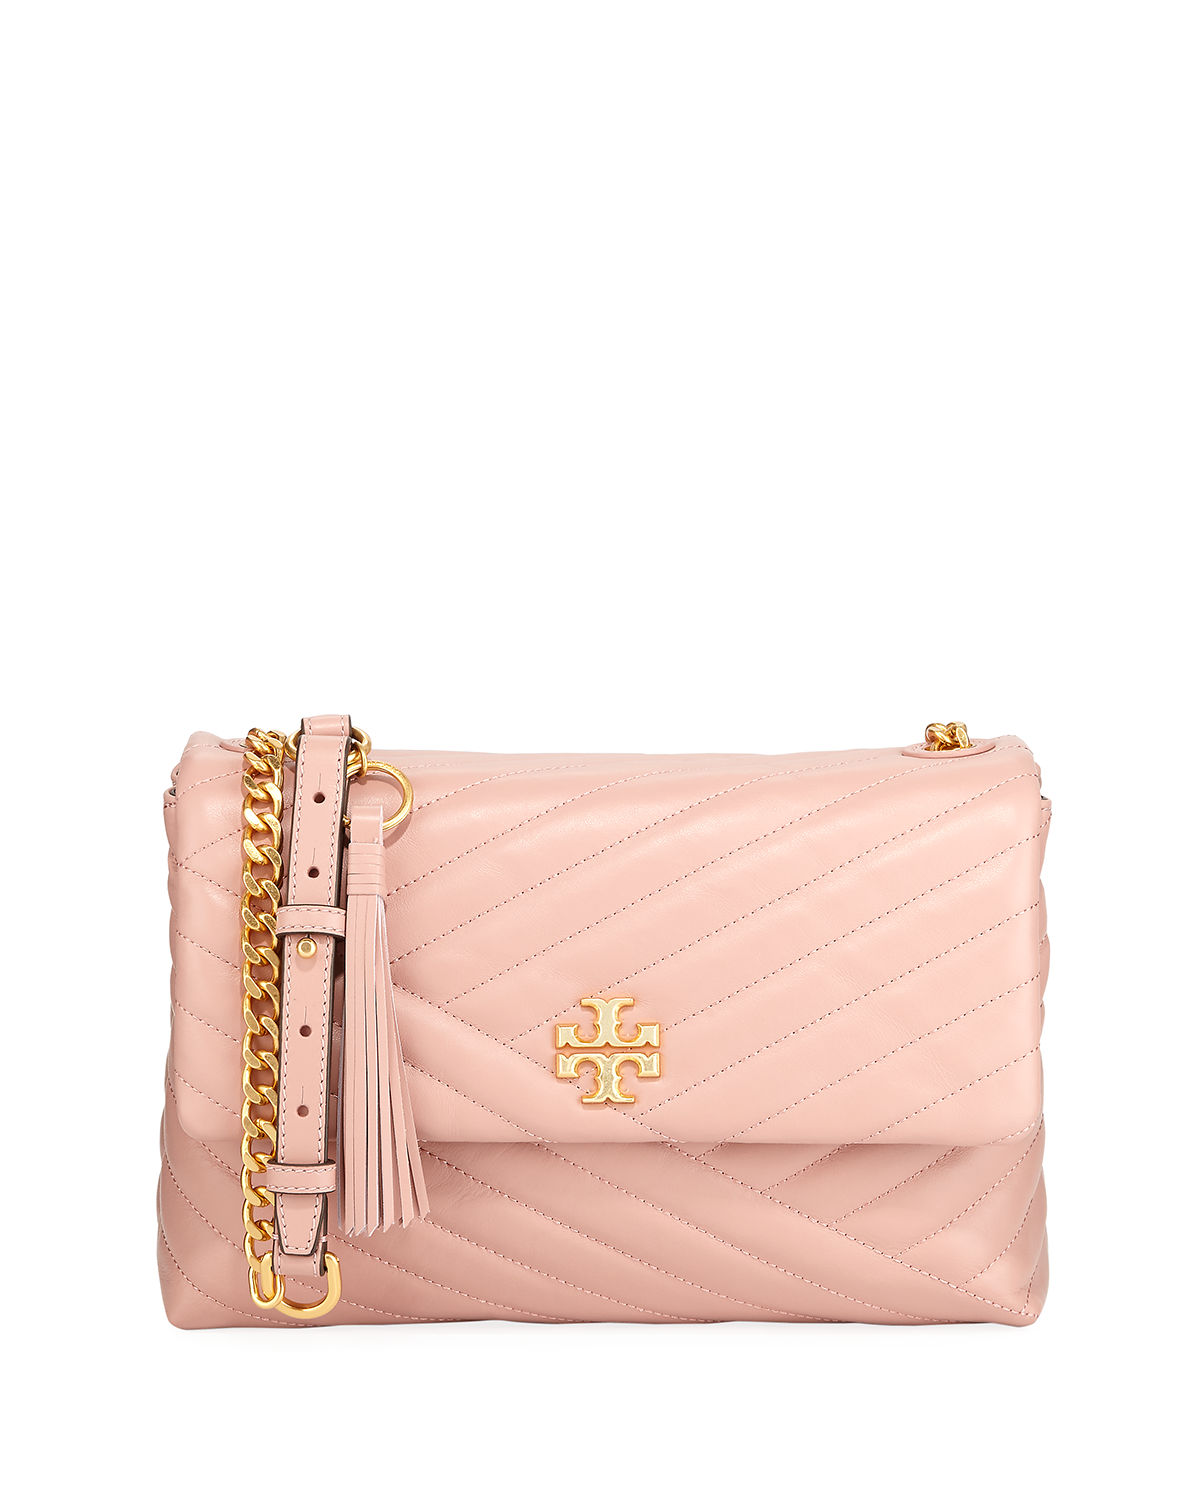 fa099f0ba6d3 Tory Burch Kira Quilted Leather Shoulder Bag   Neiman Marcus